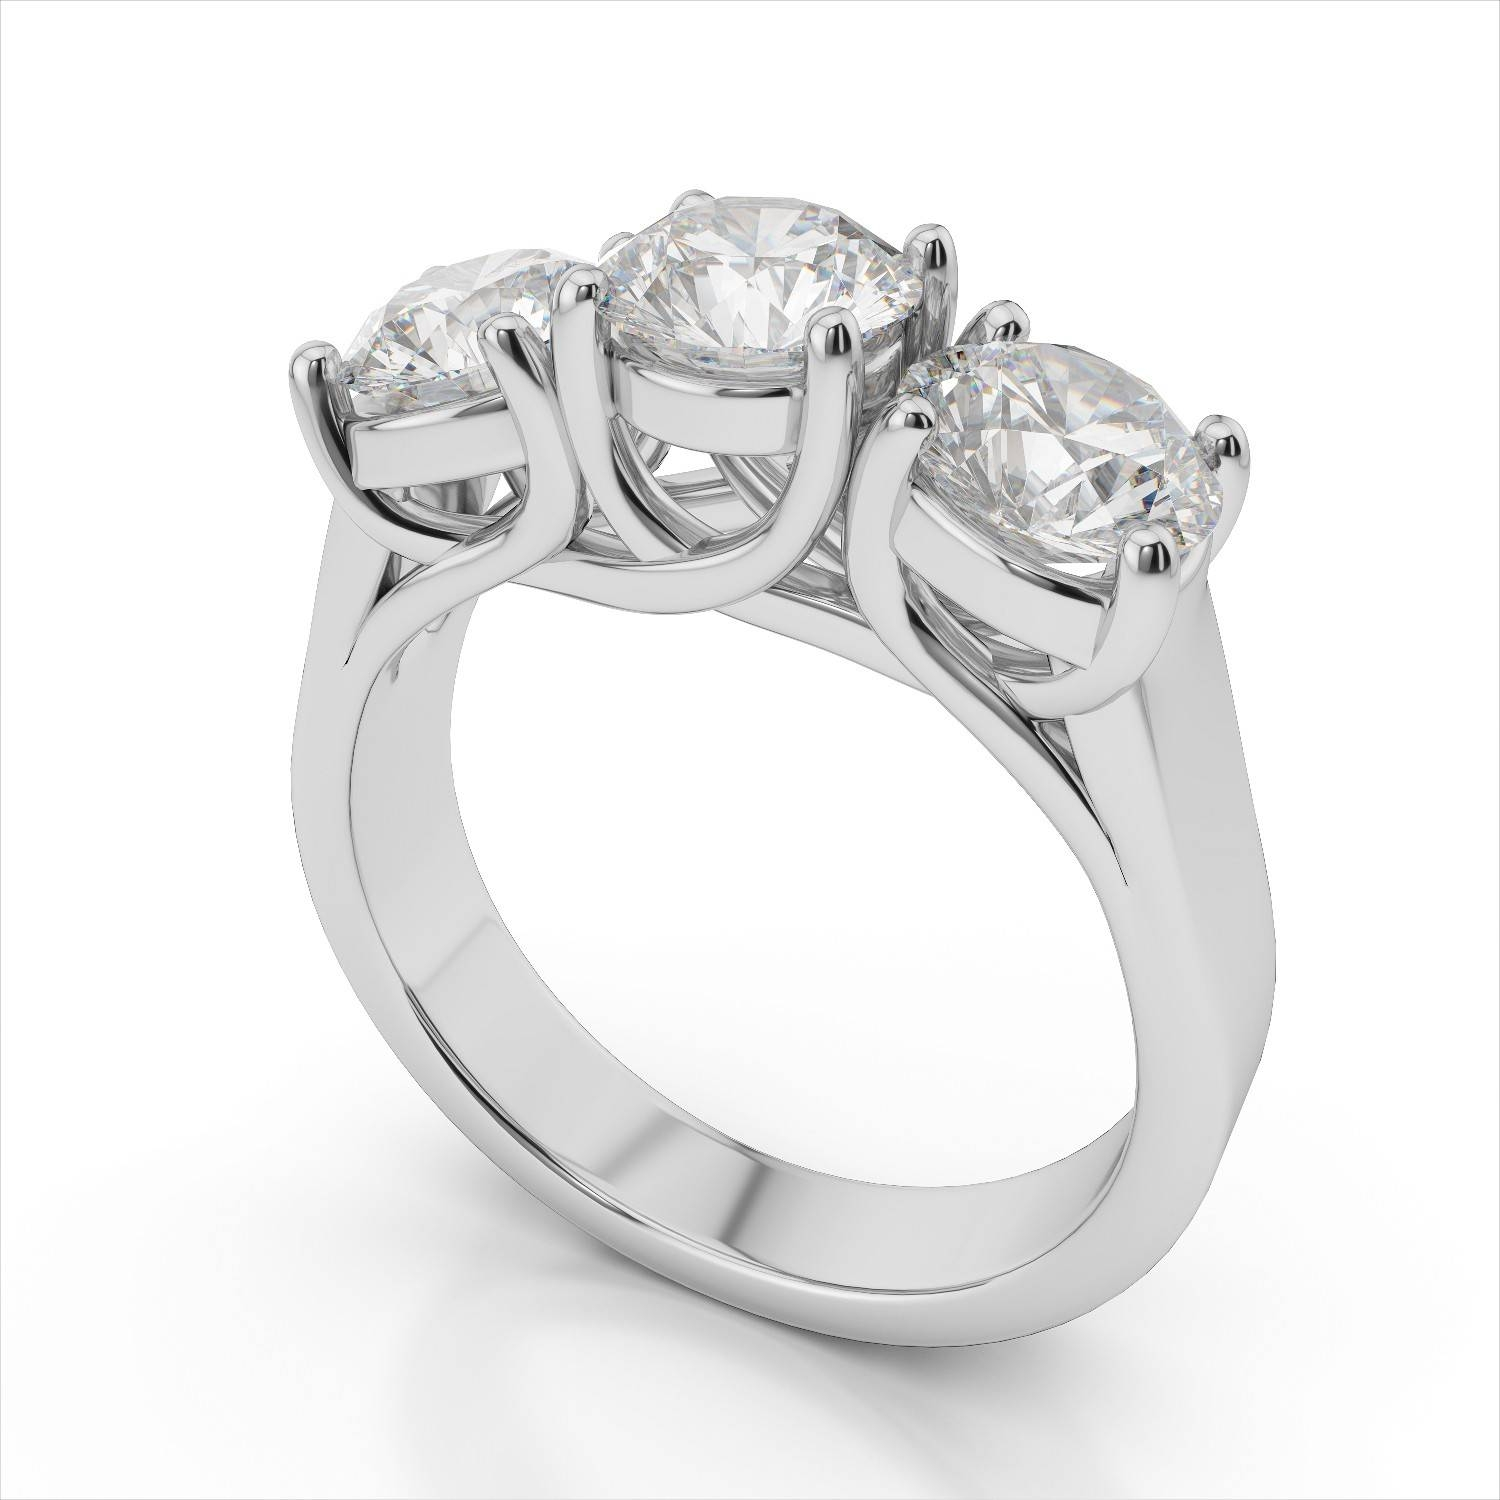 3 Stone Round Diamond Trellis Engagement Ring In 18K White Gold With Regard To White Gold 3 Stone Engagement Rings (View 6 of 15)